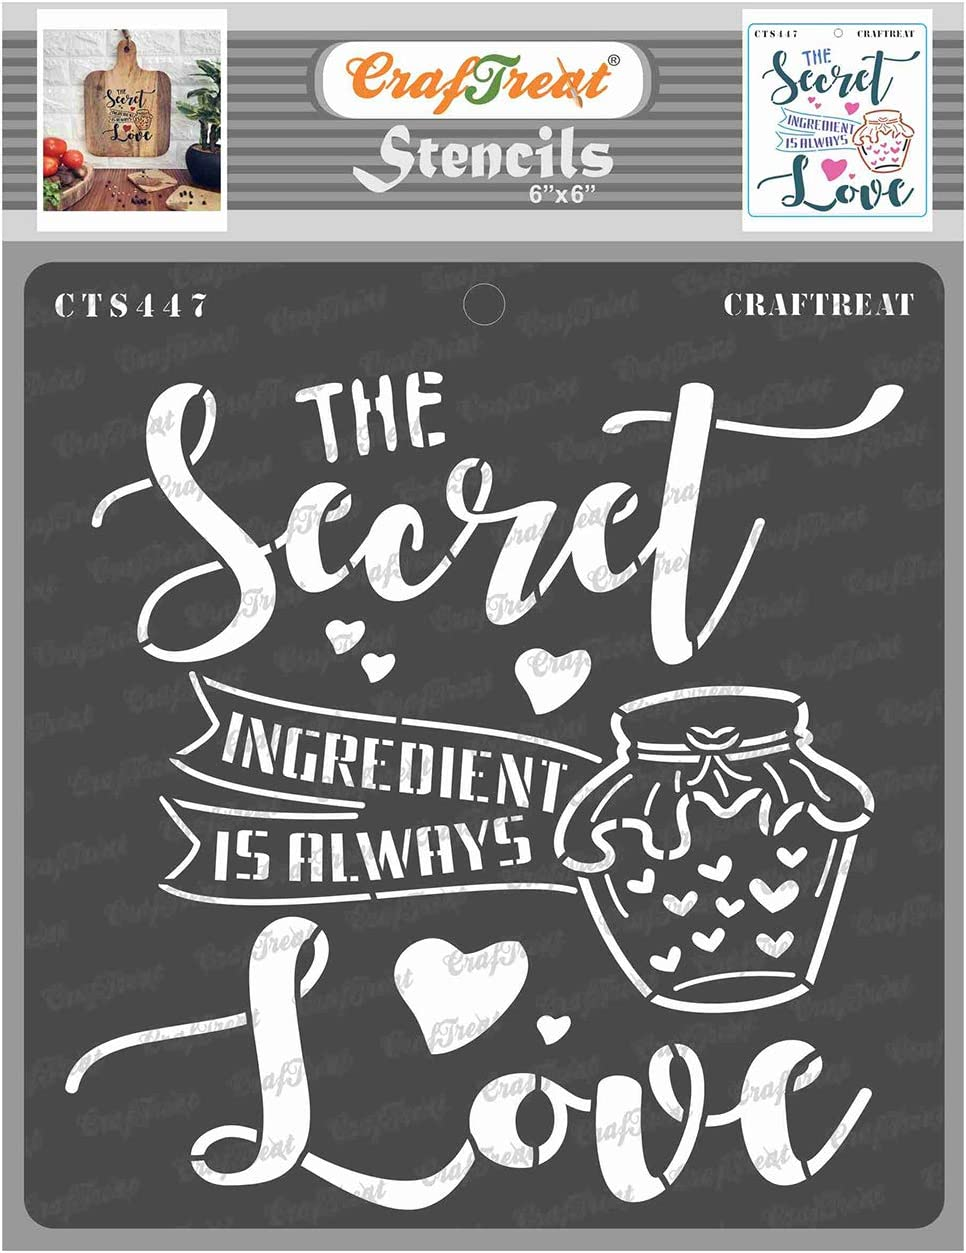 CrafTreat Quote Stencils for Painting on Wood, Canvas, Paper, Fabric, Floor, Wall and Tile - Secret Ingredient - 6x6 Inches - Reusable DIY Art and Craft Stencils - Kitchen Decor Stencils for Painting